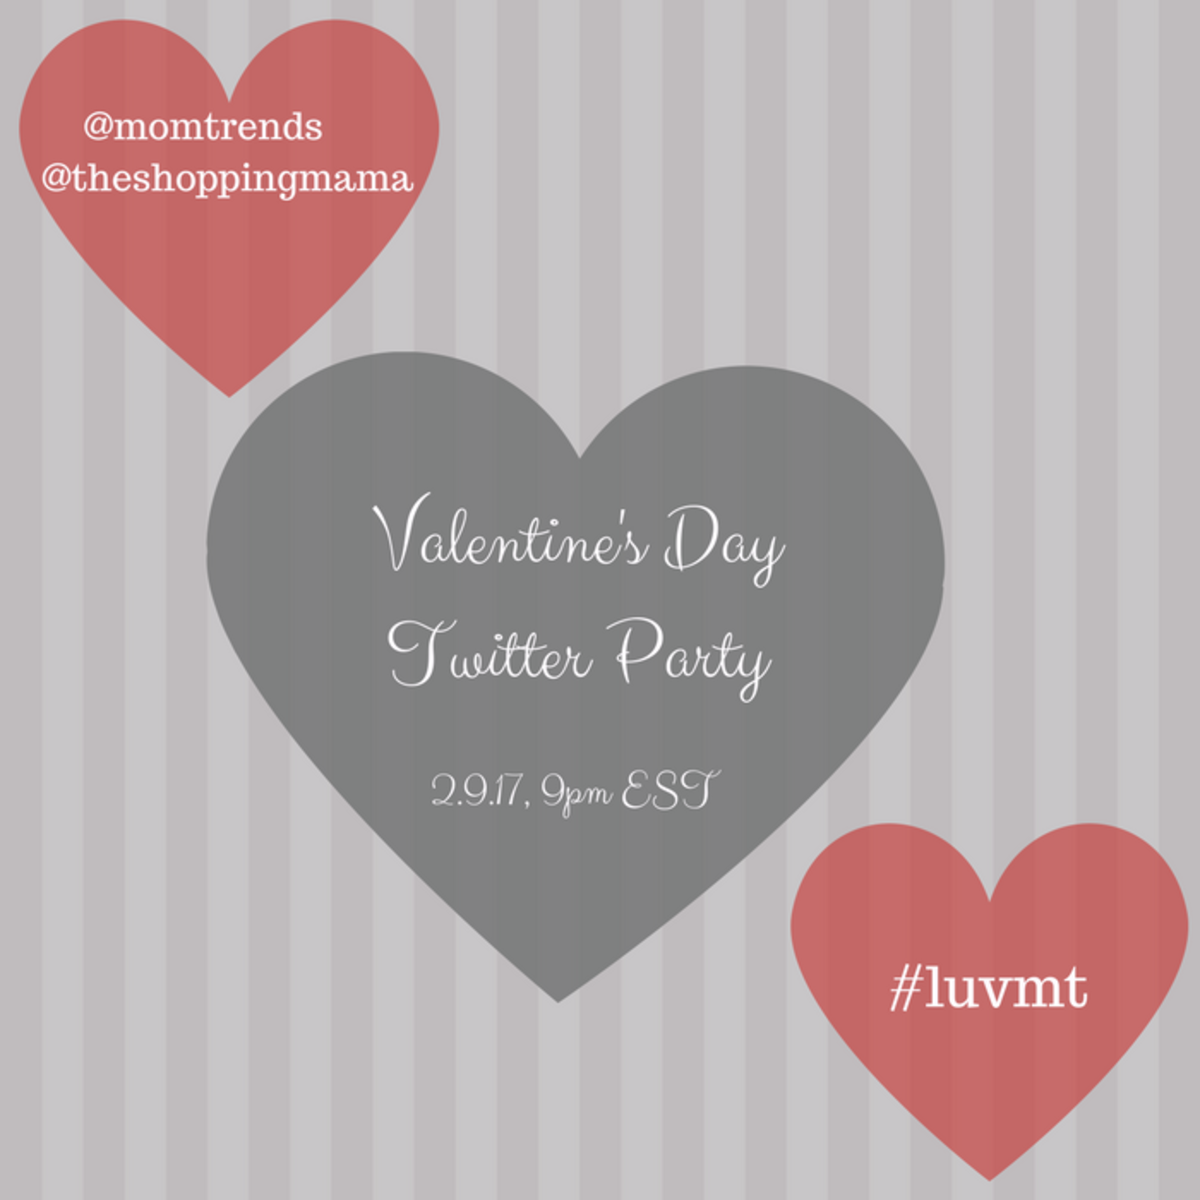 valentine's day twitter party, twitter party, social media, valentine's day gifts, gifts for her, valentine's day